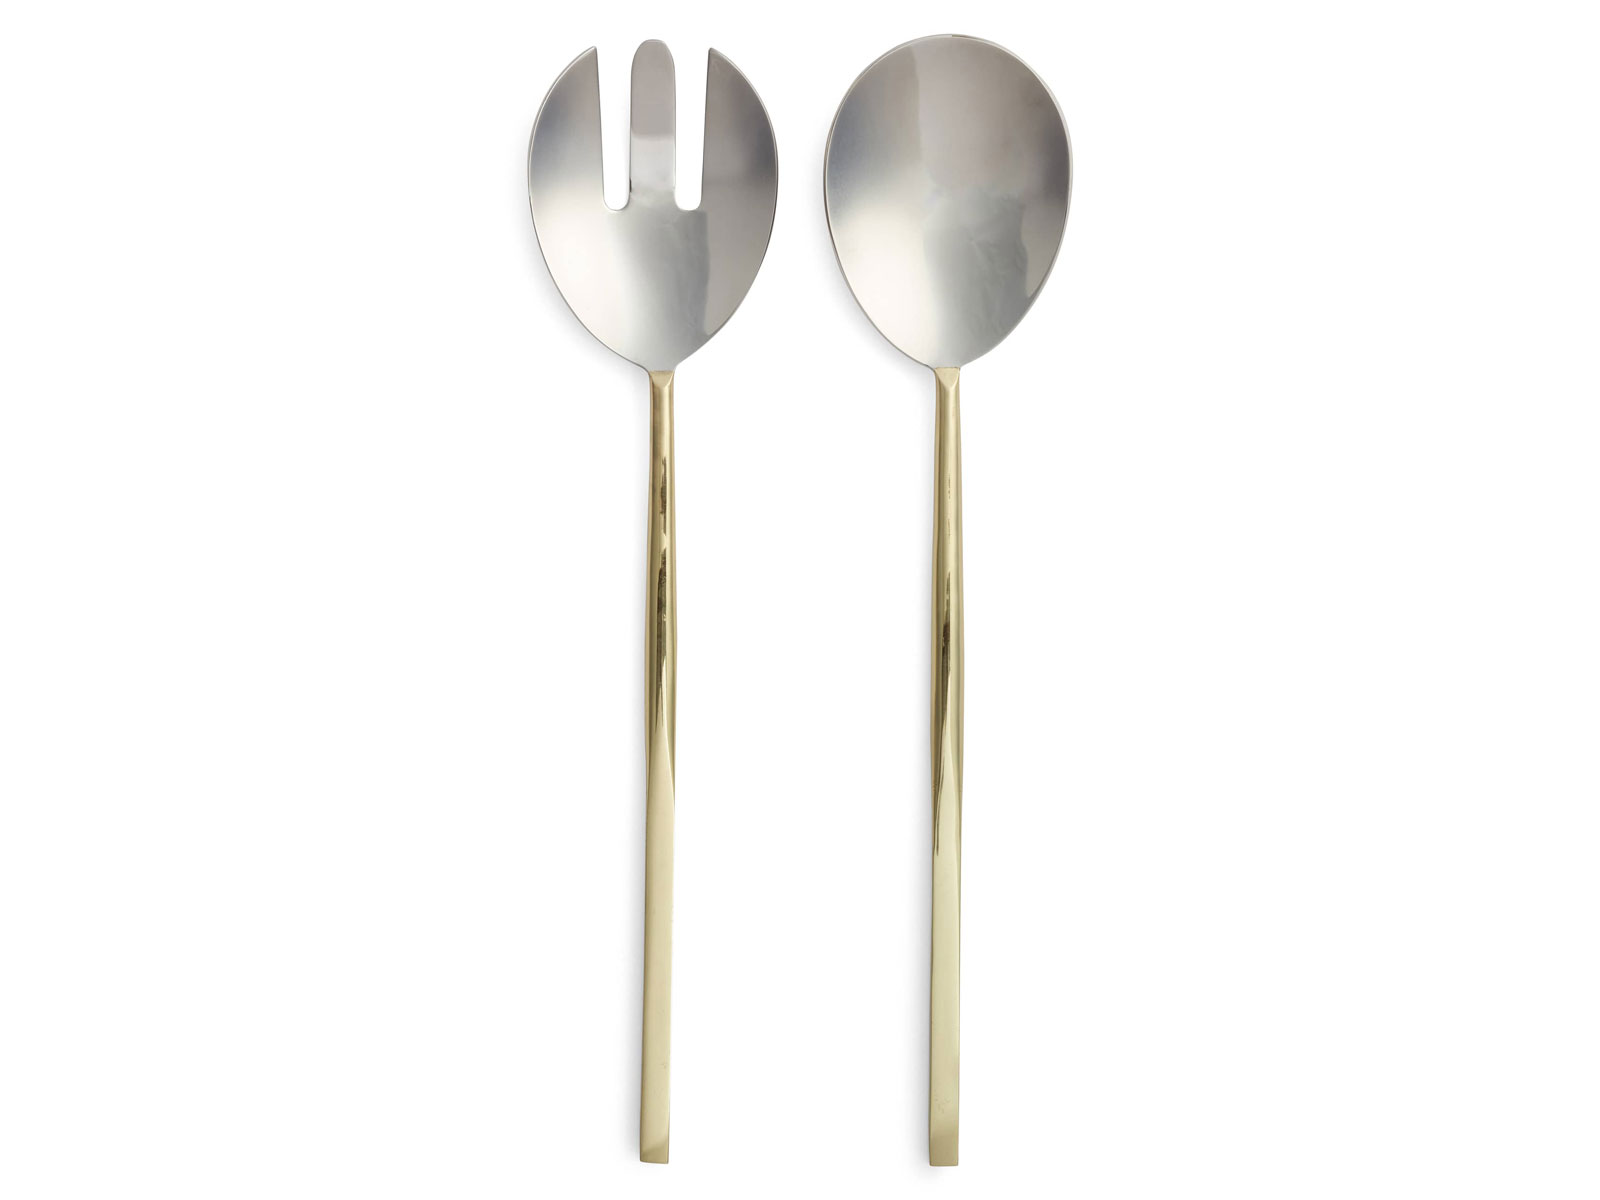 Golden 2-Piece Salad Serving Set